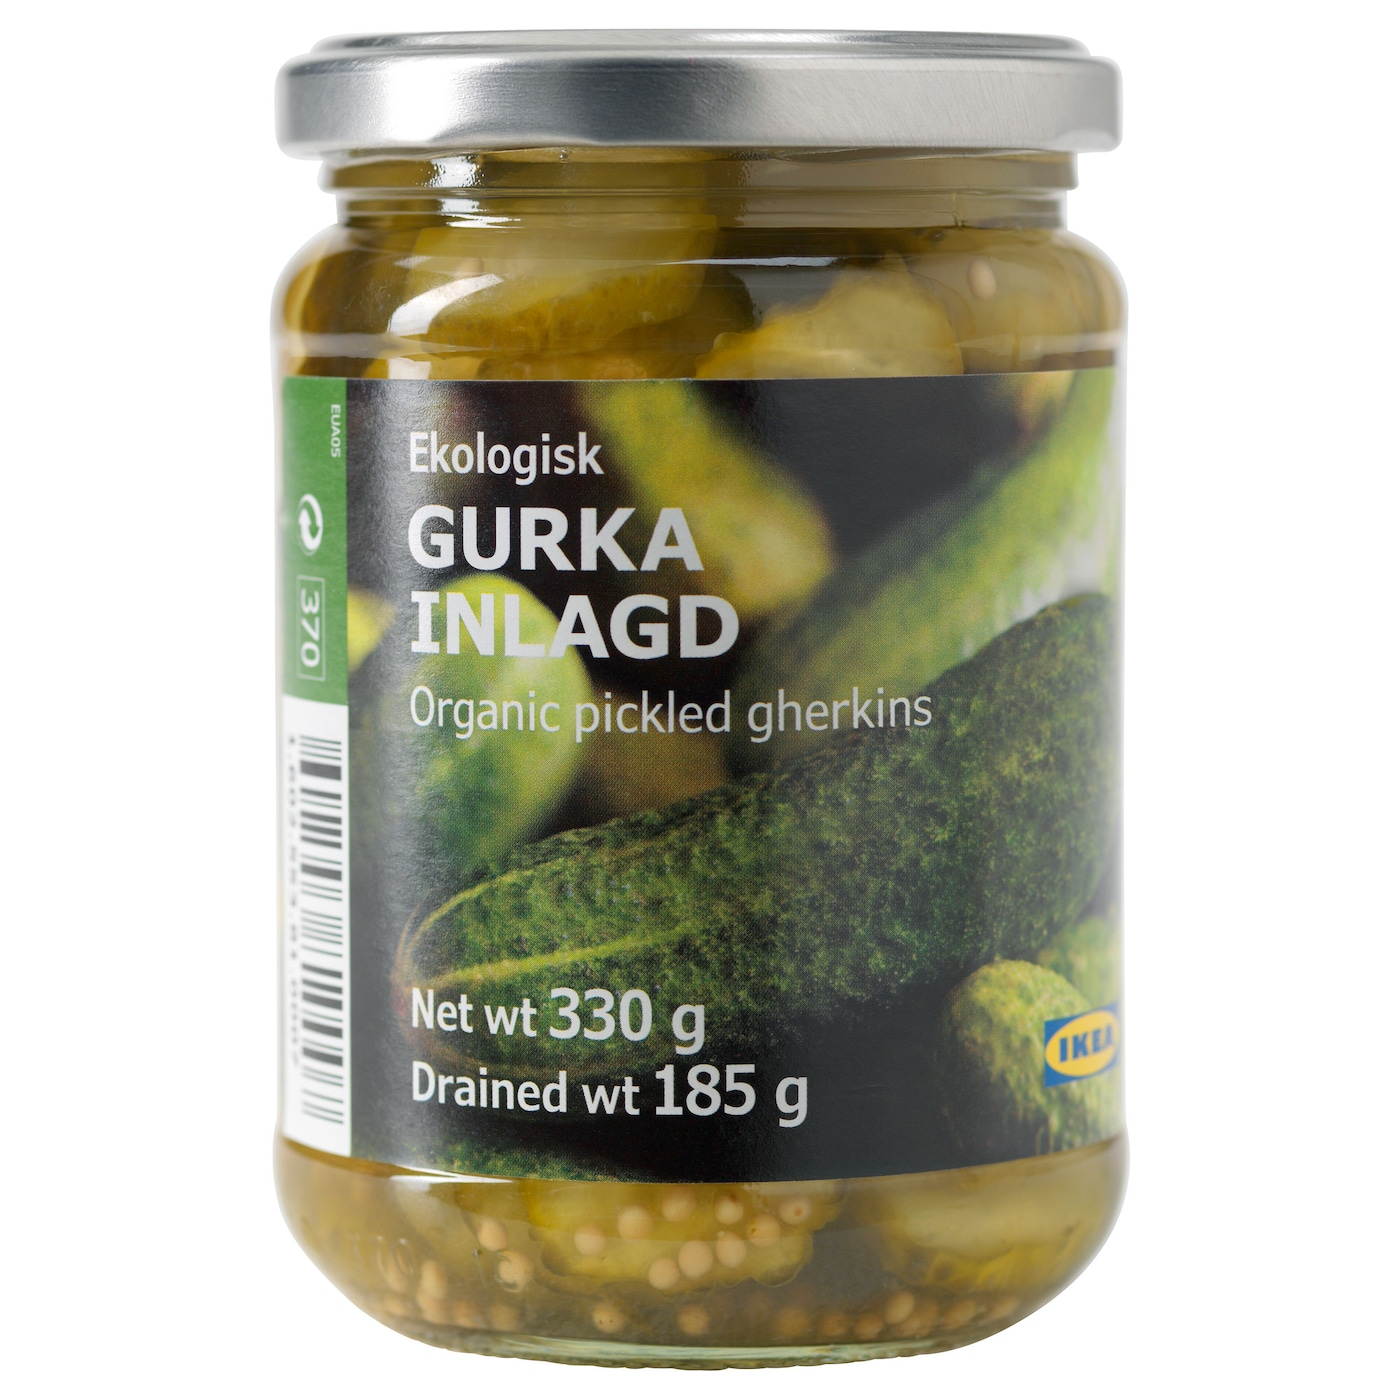 IKEA GURKA INLAGD pickled gherkins, sliced